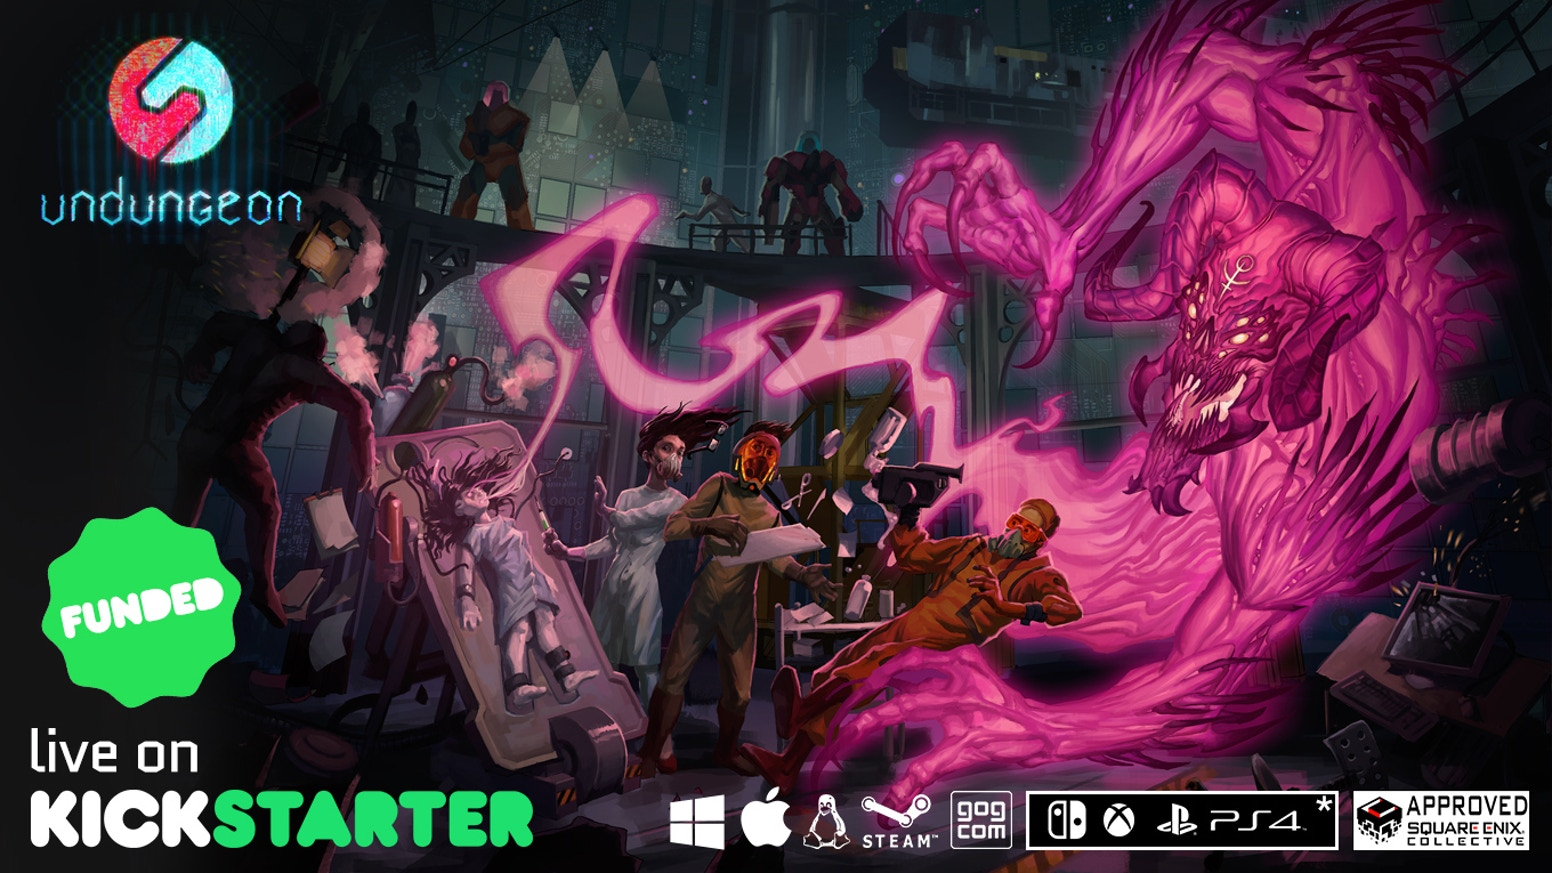 Undungeon Pixelart Actionrpg With Roguelike Elements By Laughing